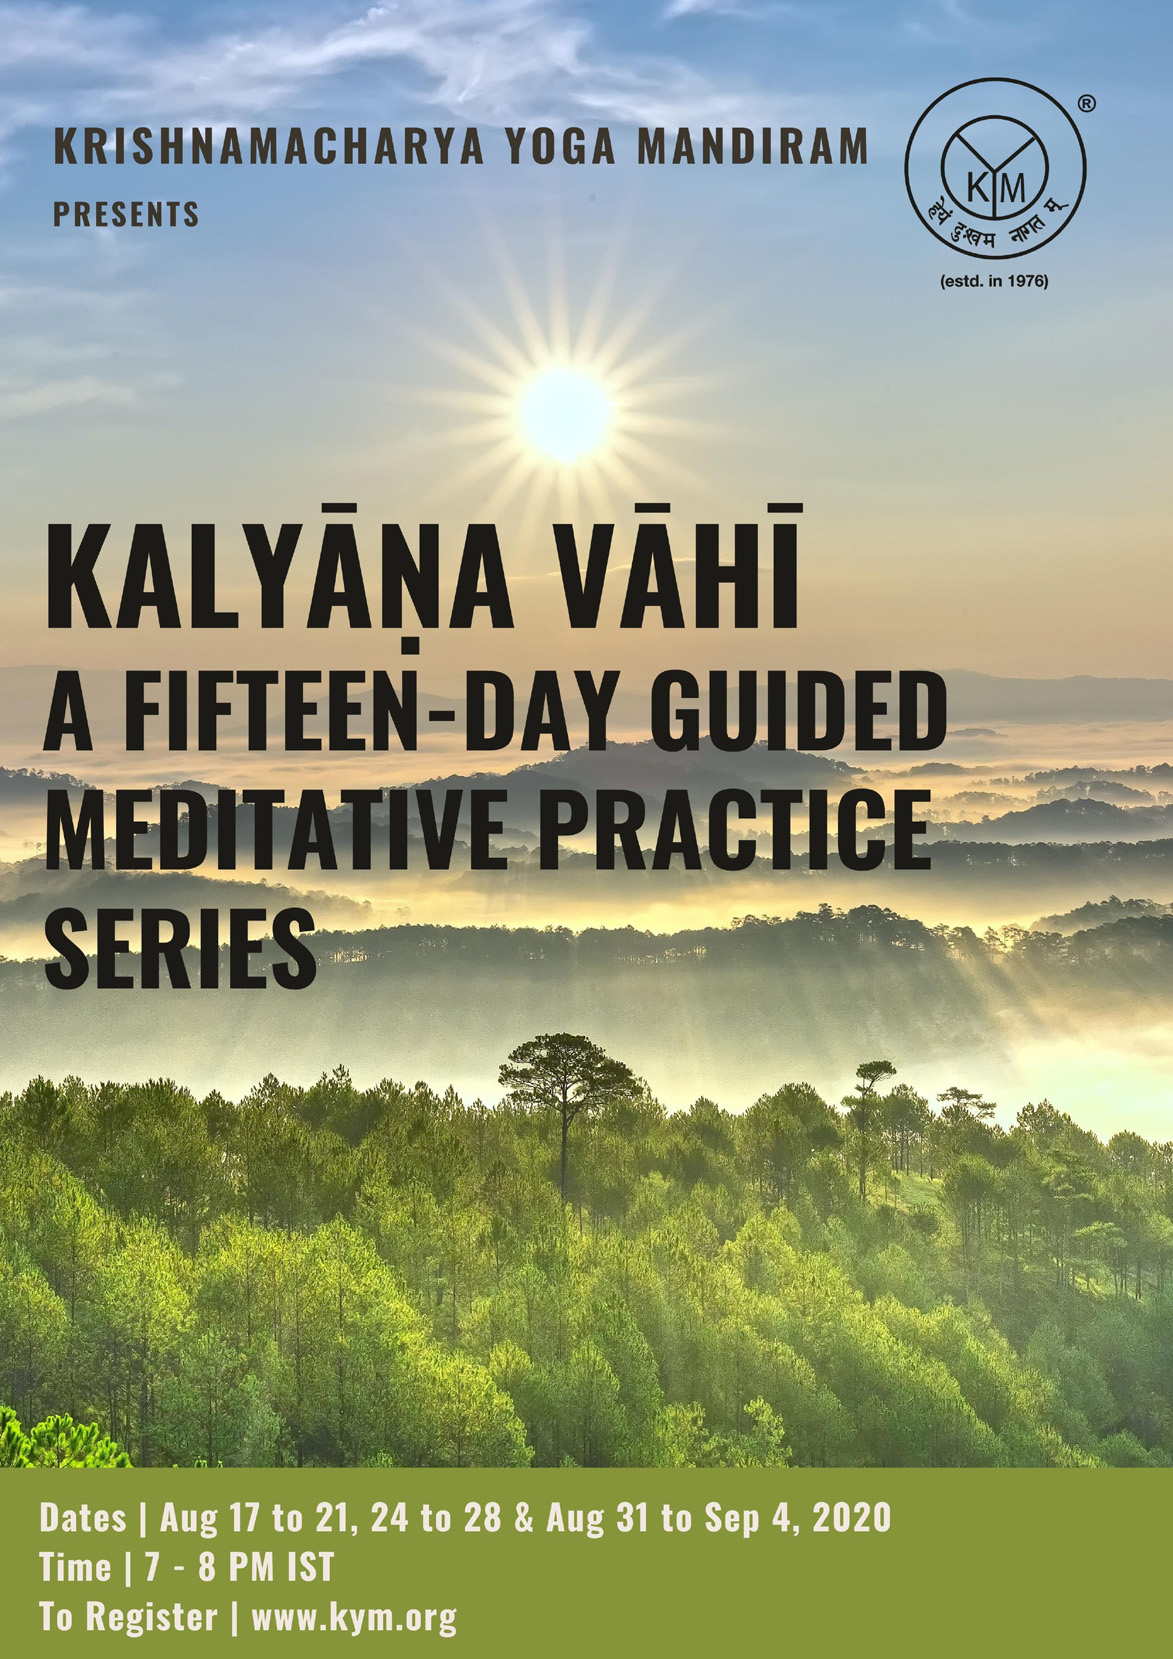 A Fifteen-Day Guided Meditative Practice Series